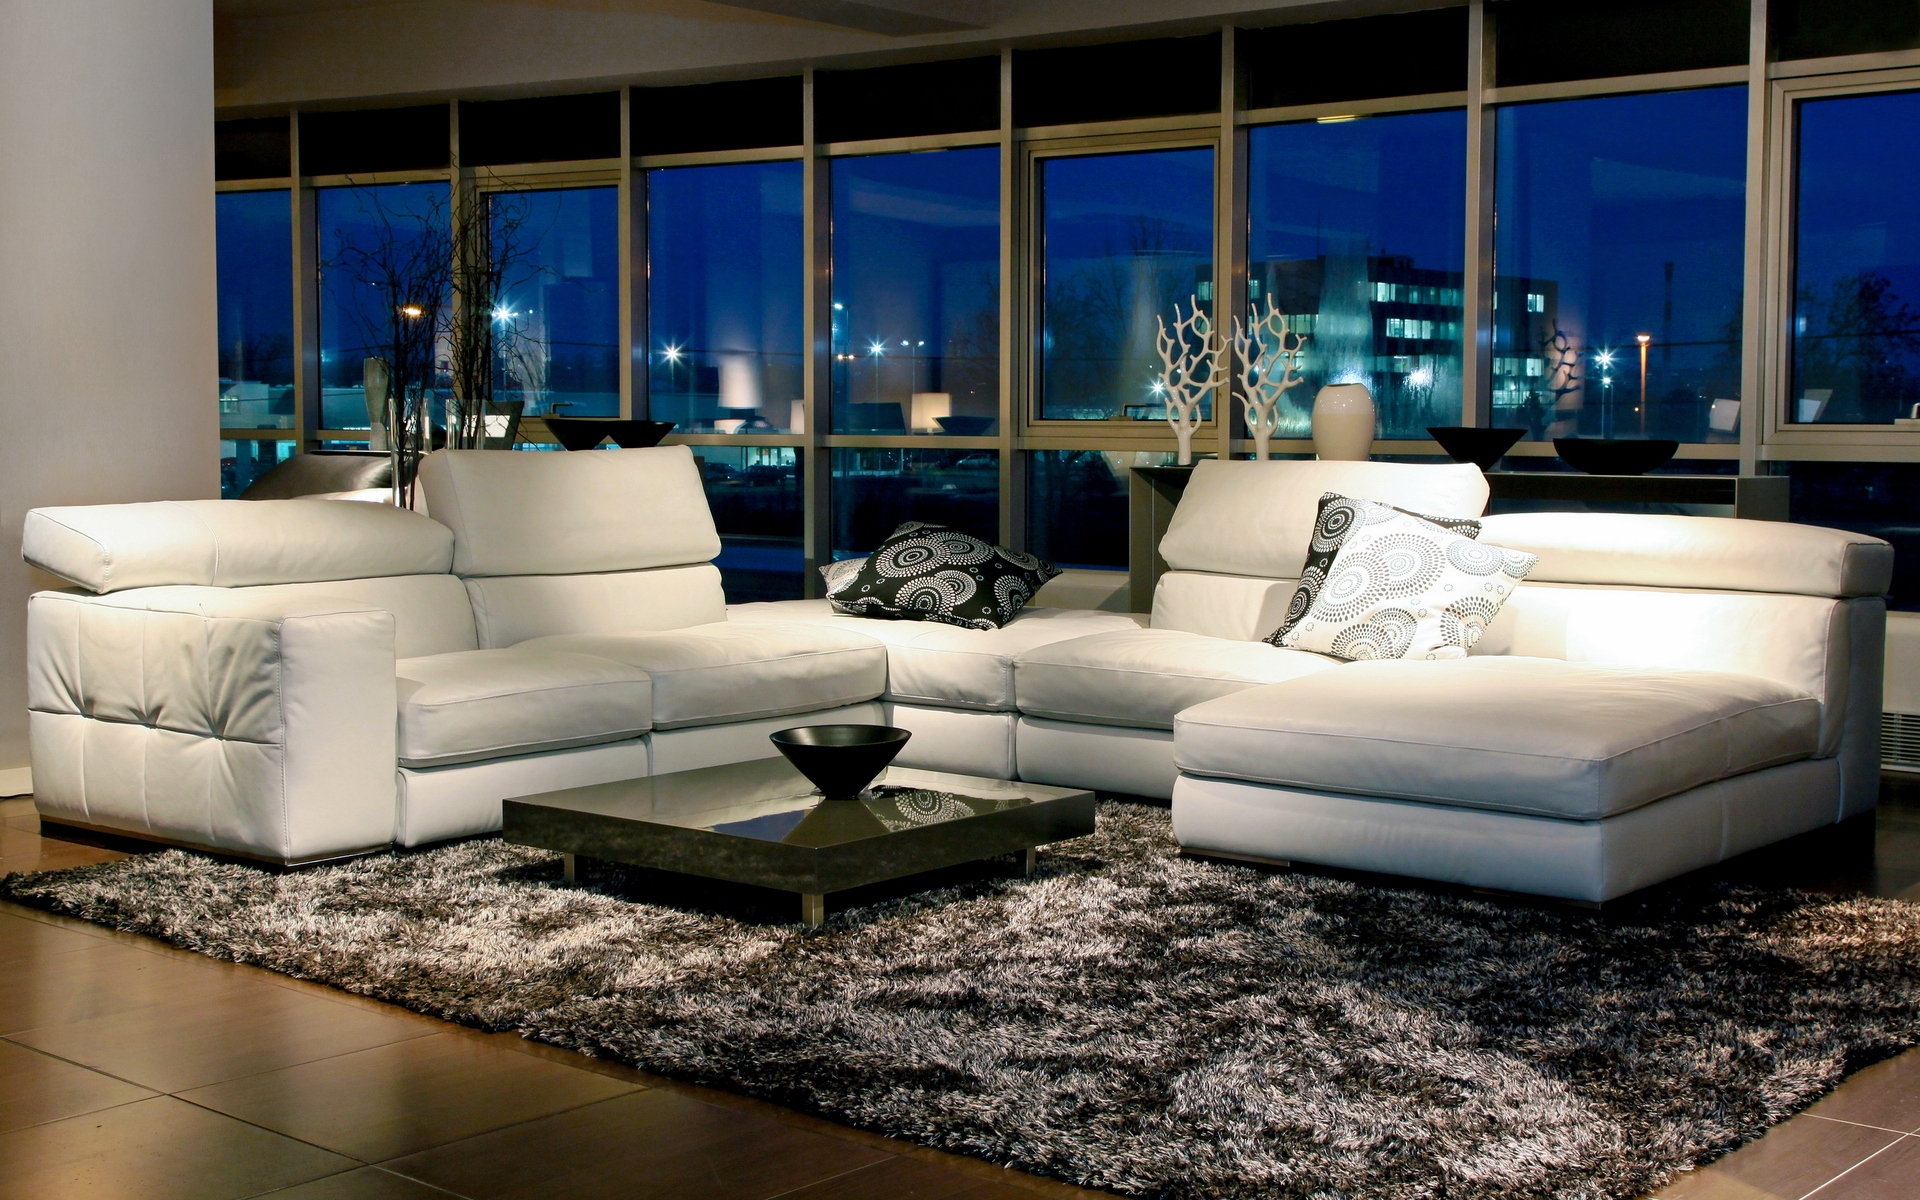 interior-design-style-room-furniture-white-couch-pillow-carpet-window-night